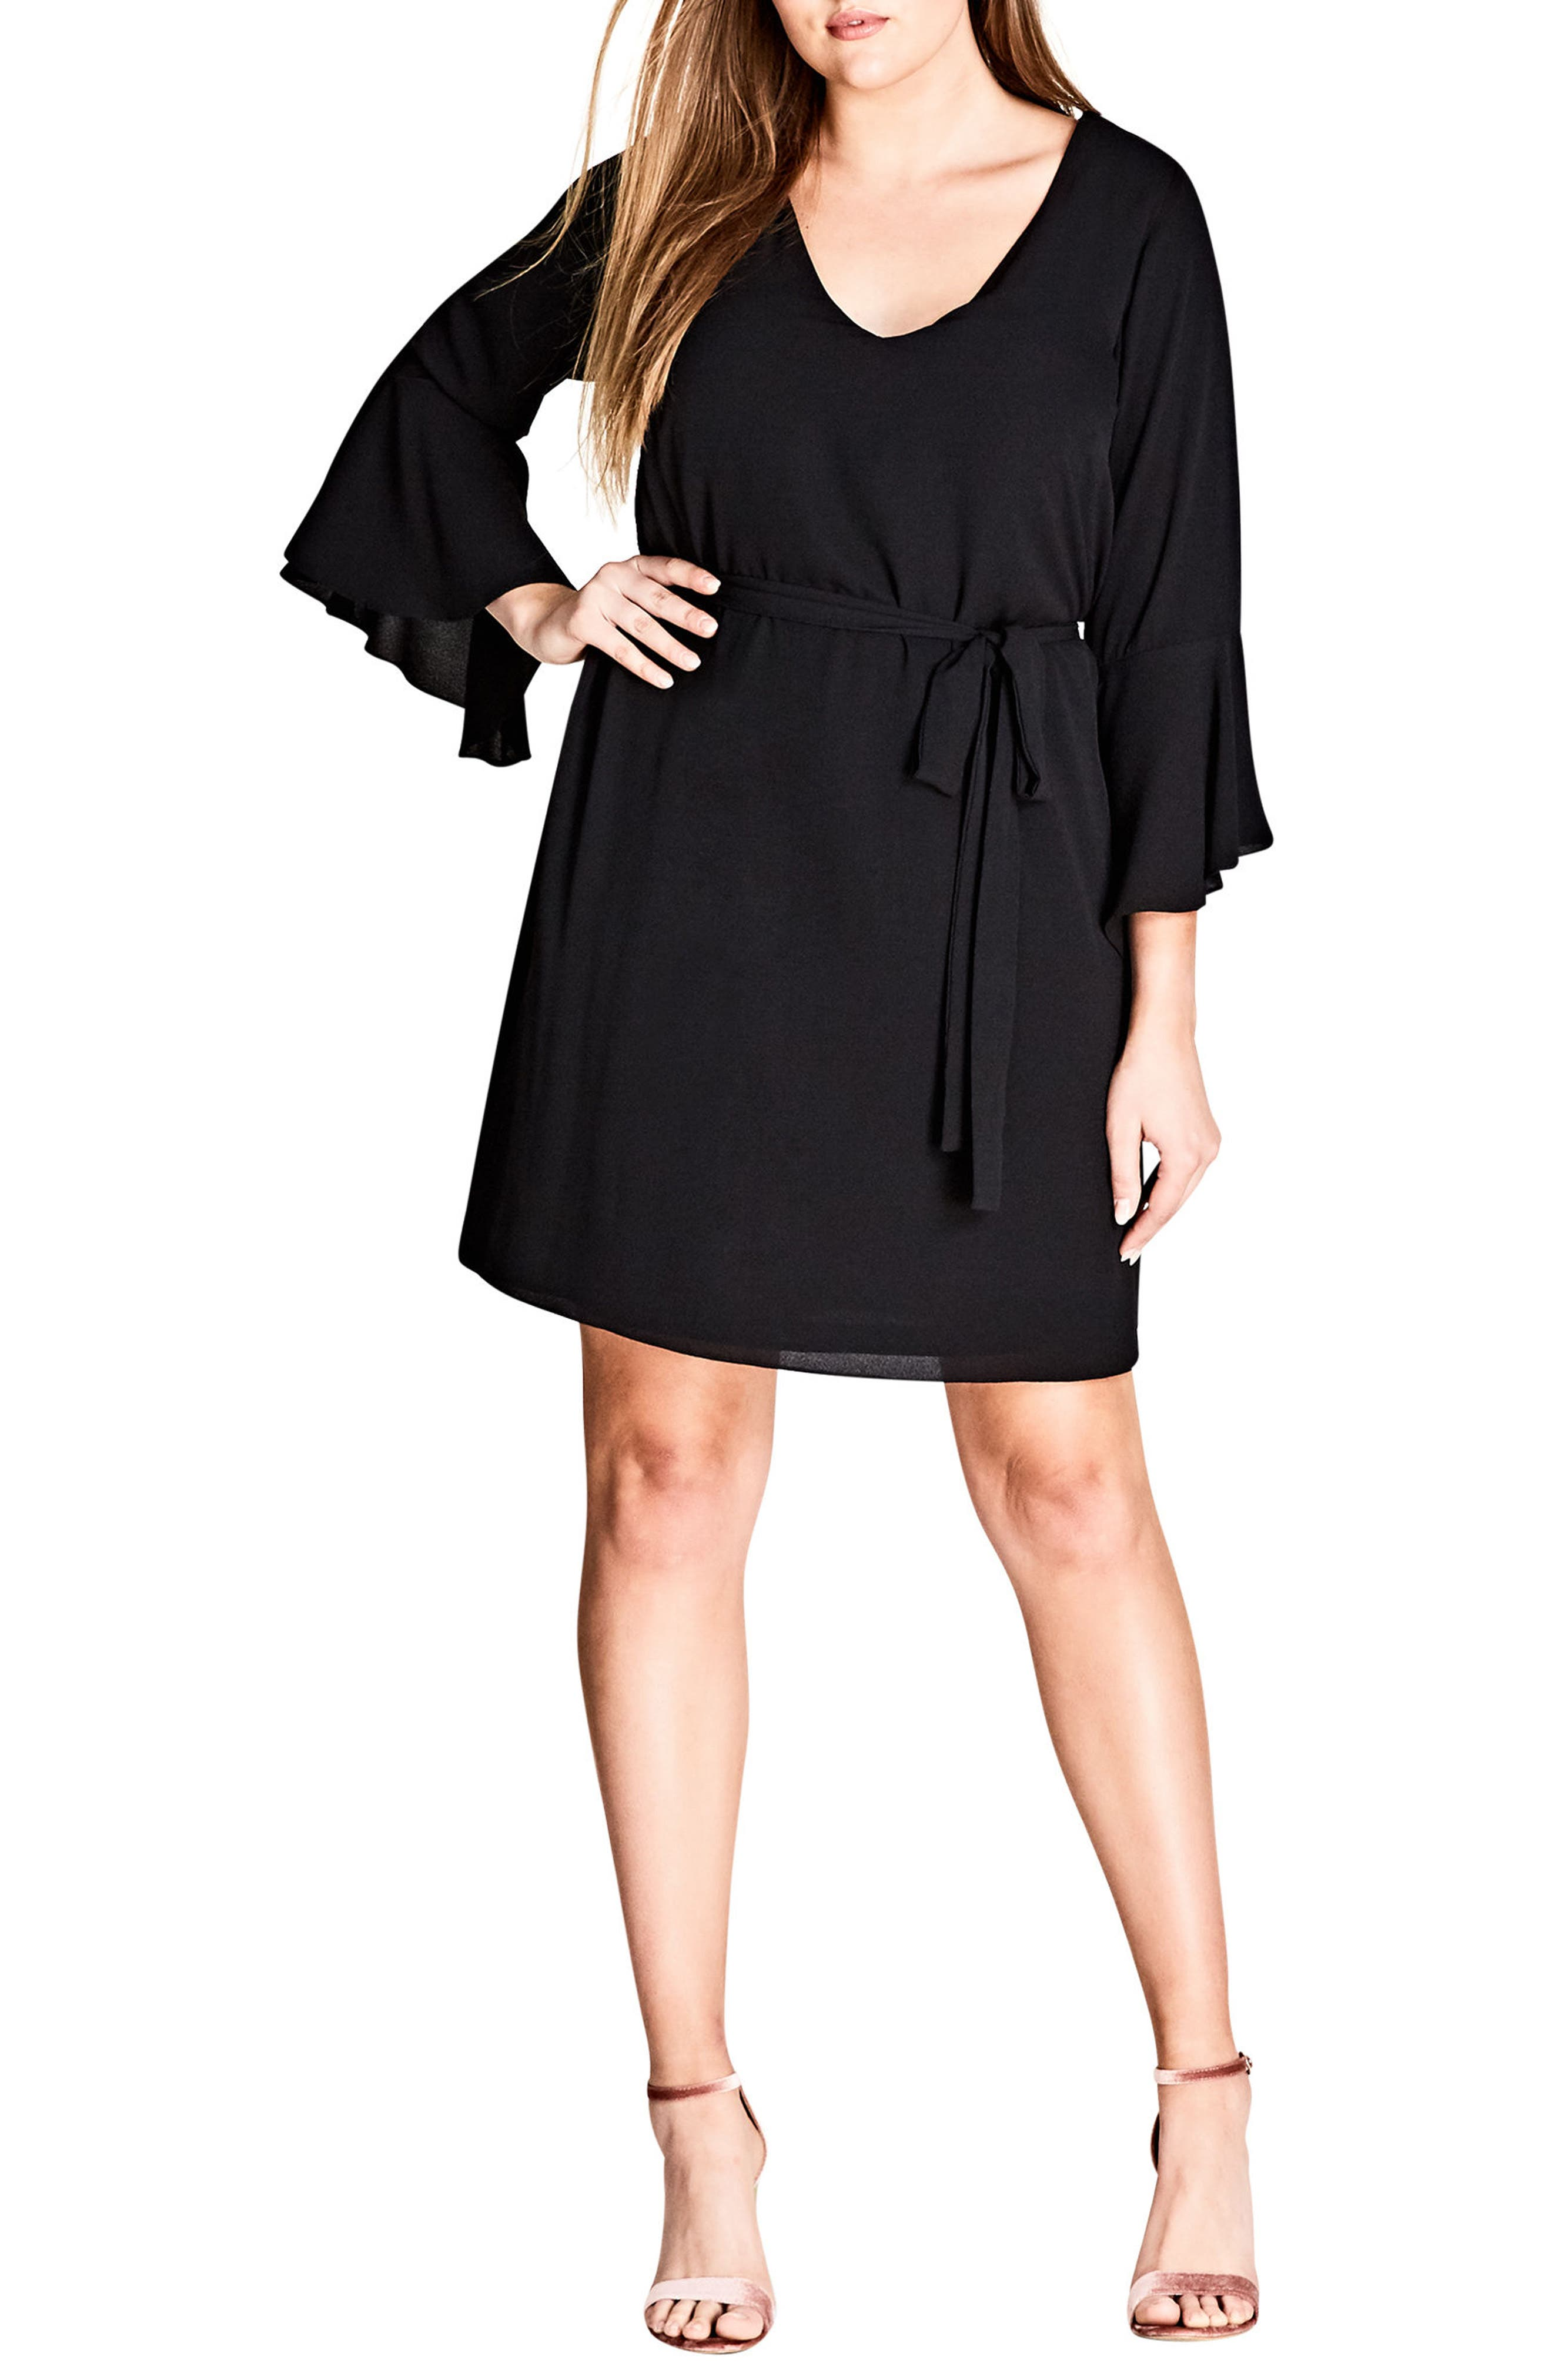 Main Image - City Chic Tie Waist Bell Sleeve Dress (Plus Size)